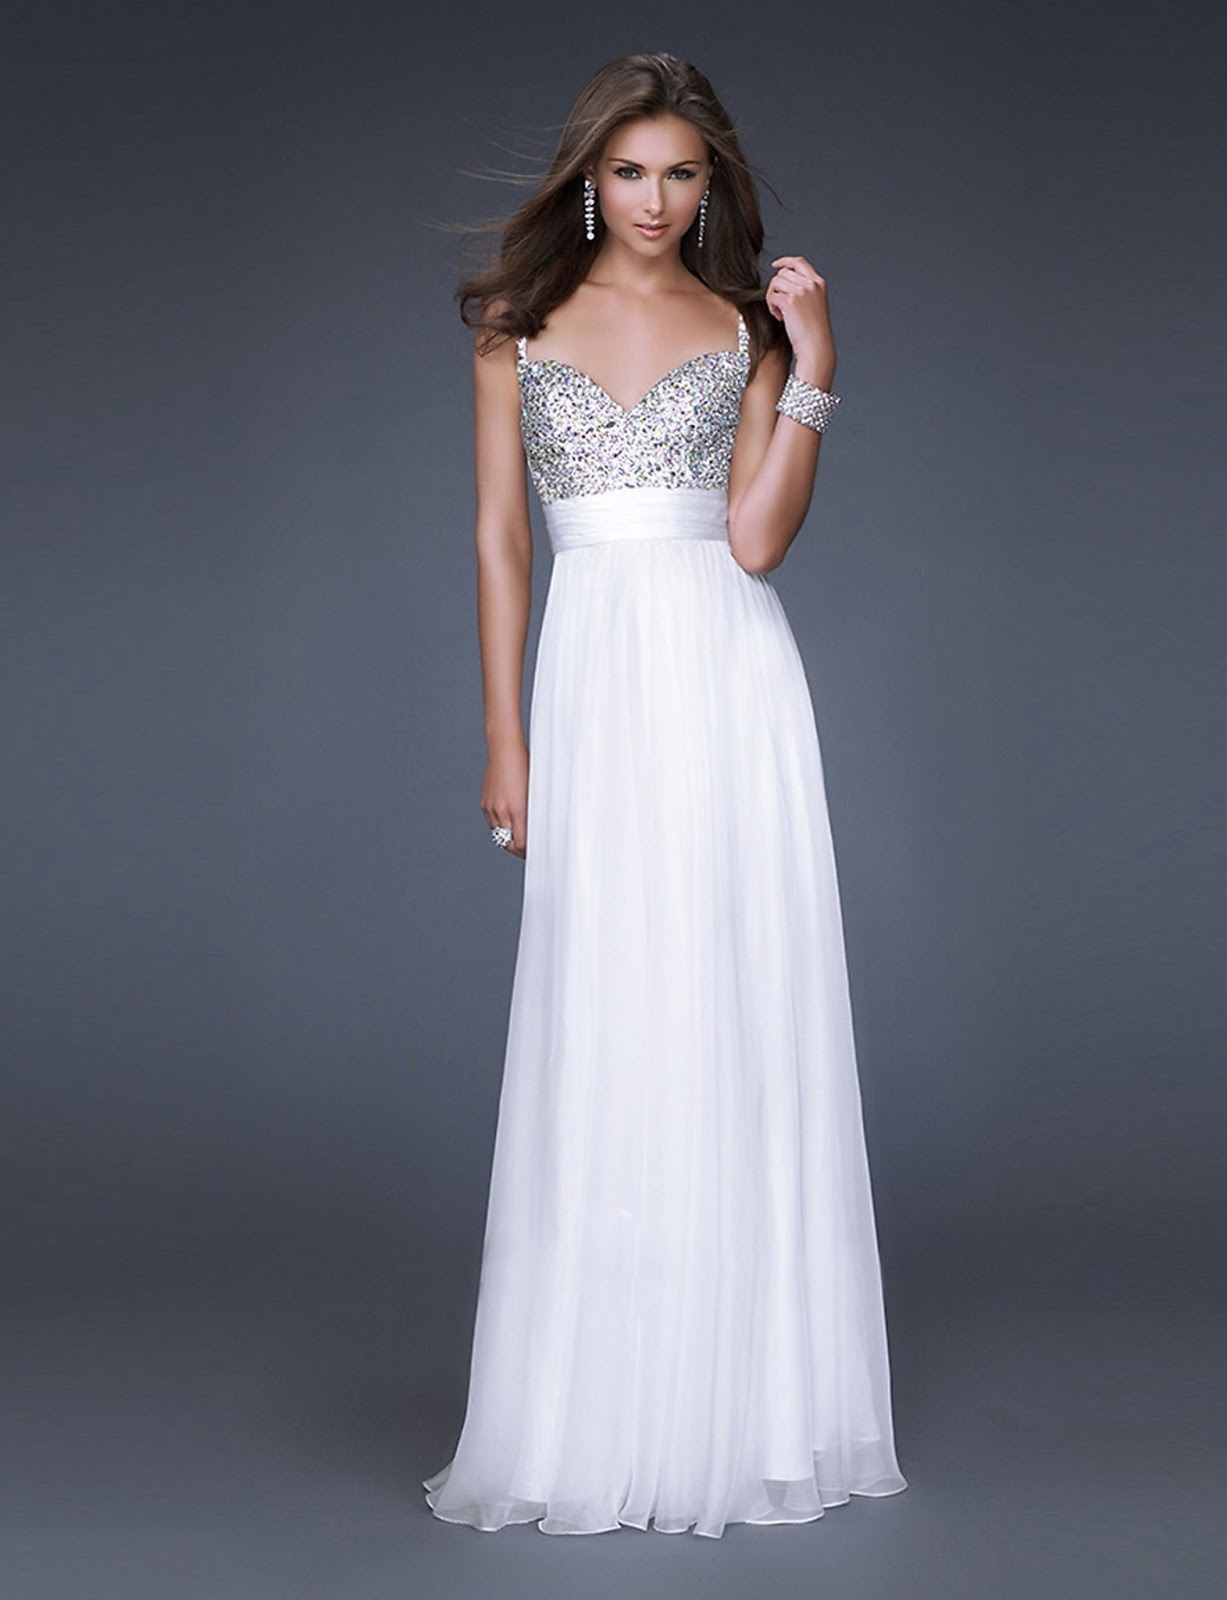 WhiteAzalea Prom Dresses: Beautiful White Prom Dresses